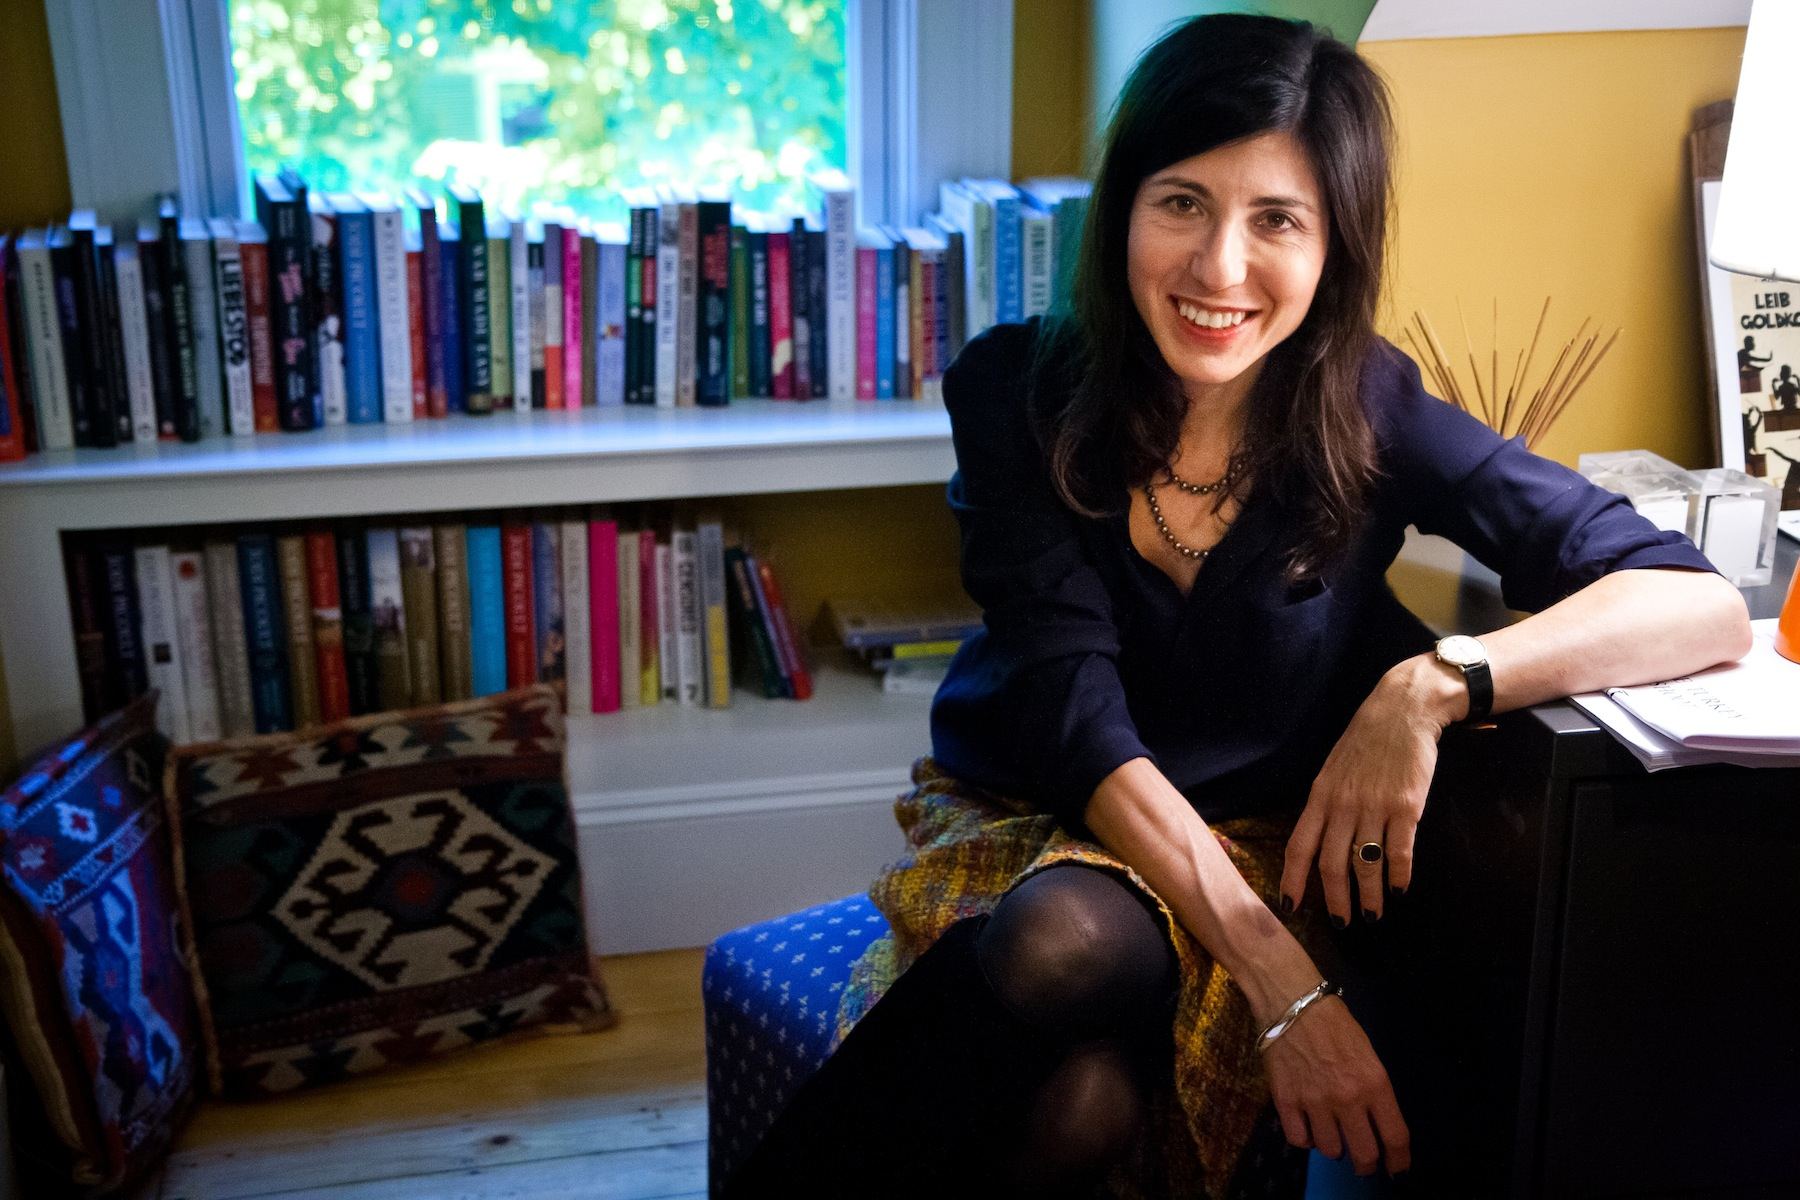 Q&A: LAURA GROSS OF THE LAURA GROSS LITERARY AGENCY ...